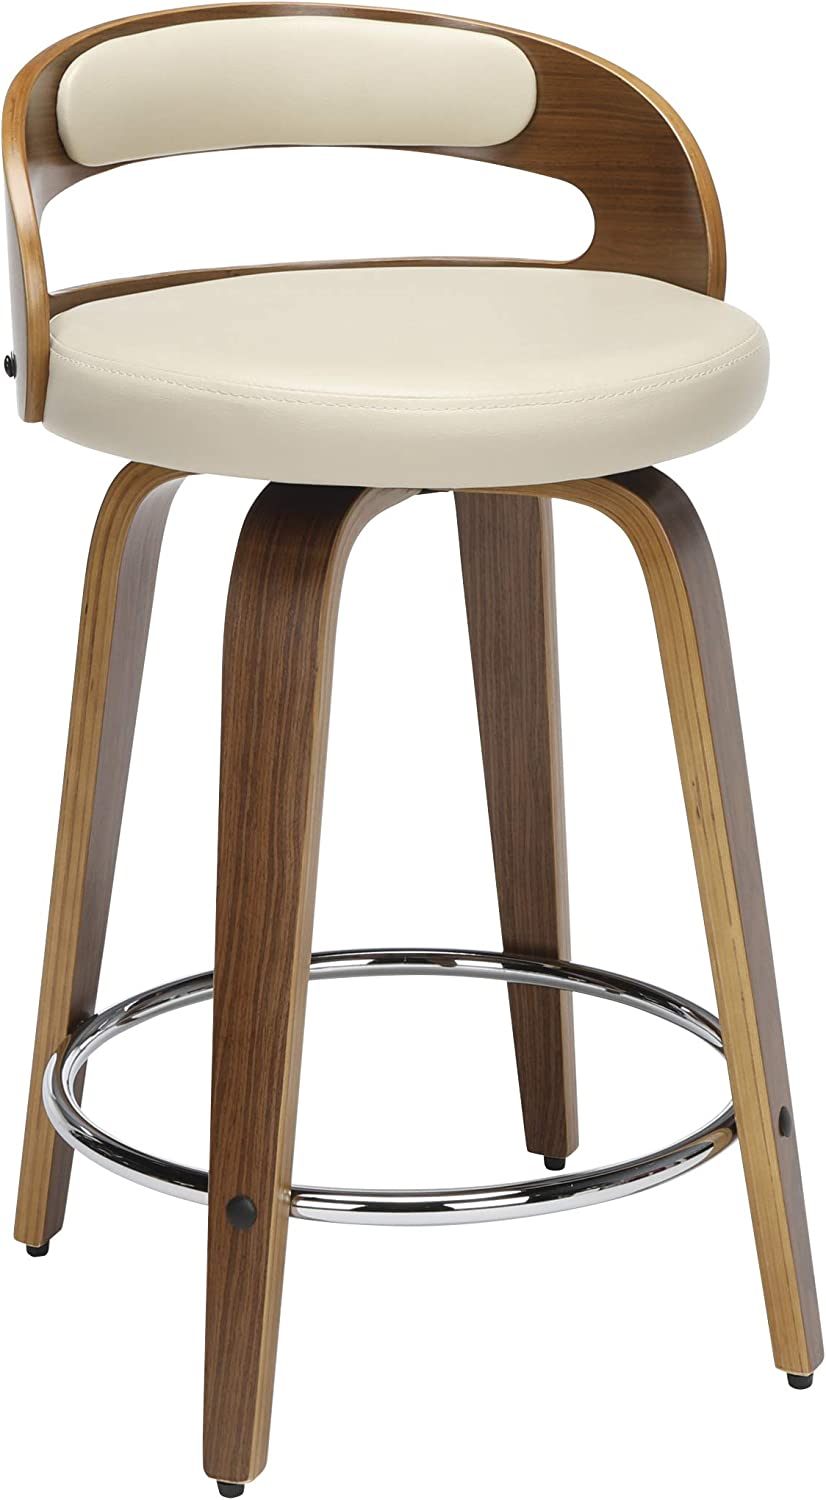 OFM Popular shop is the lowest price challenge 161 Collection Mid Century Modern Bentwood Back Regular discount 24